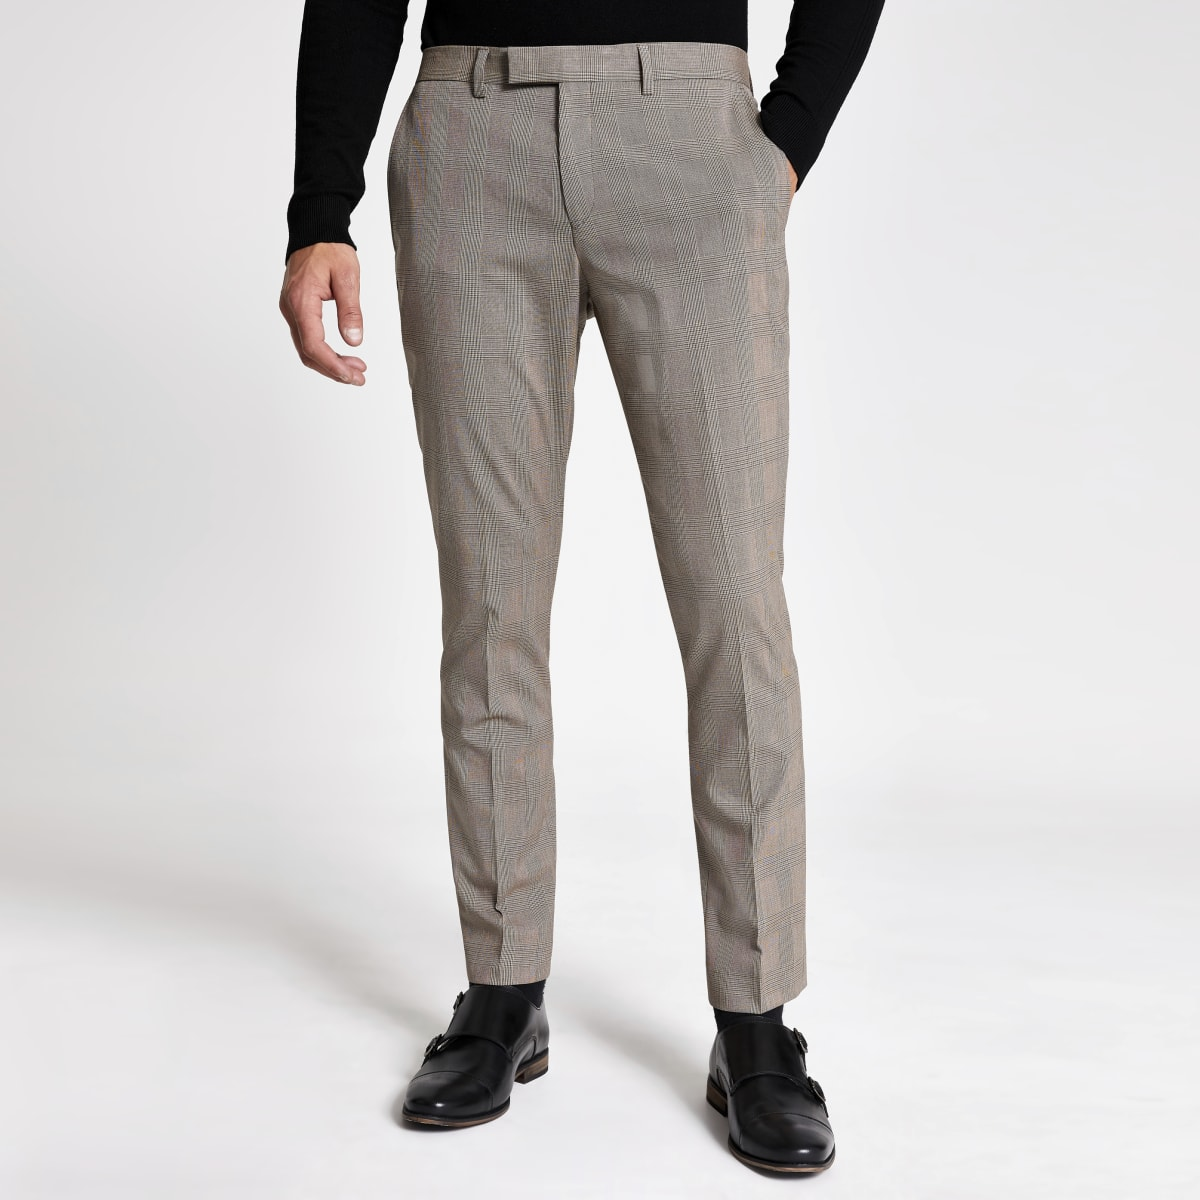 Pantalon de costume skinny stretch écru à carreaux